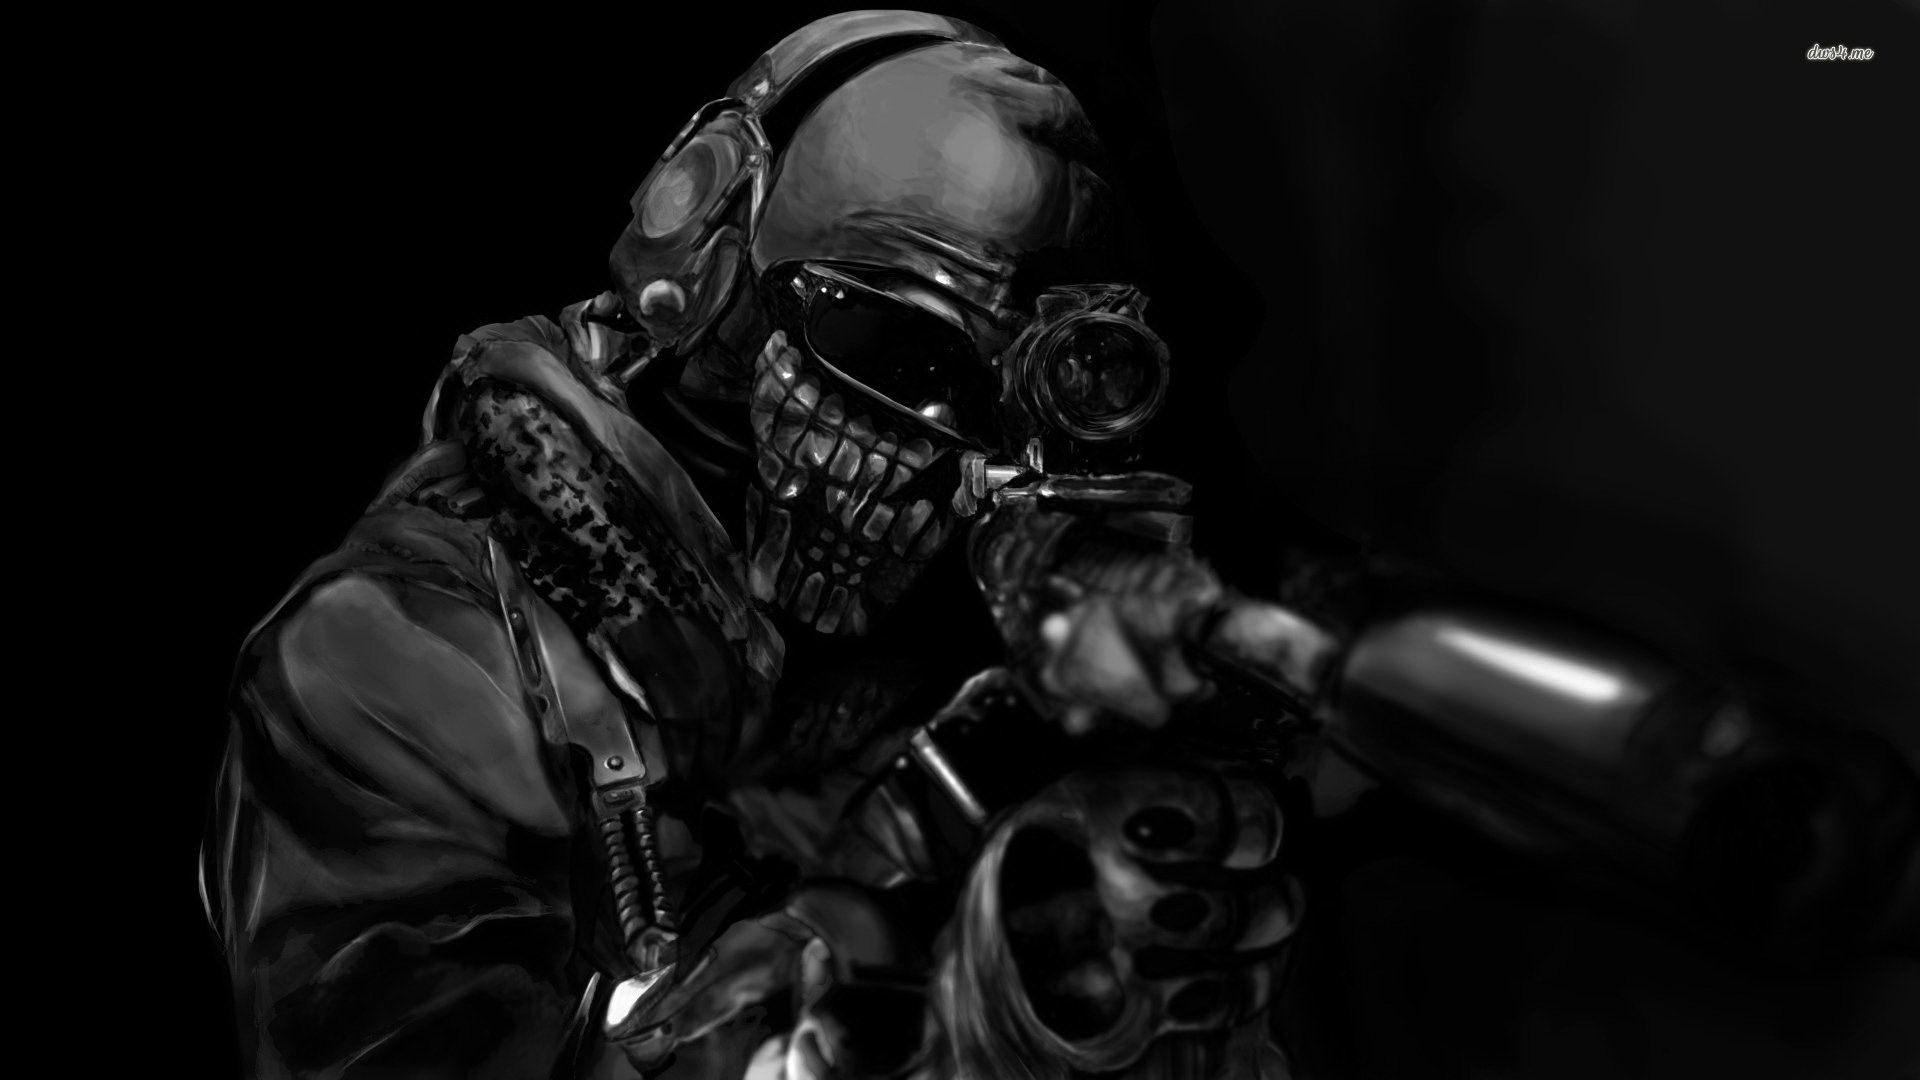 Call Of Duty Ghosts Hd Wallpaper Call Of Duty Ghosts Call Of Duty Black Call Of Duty